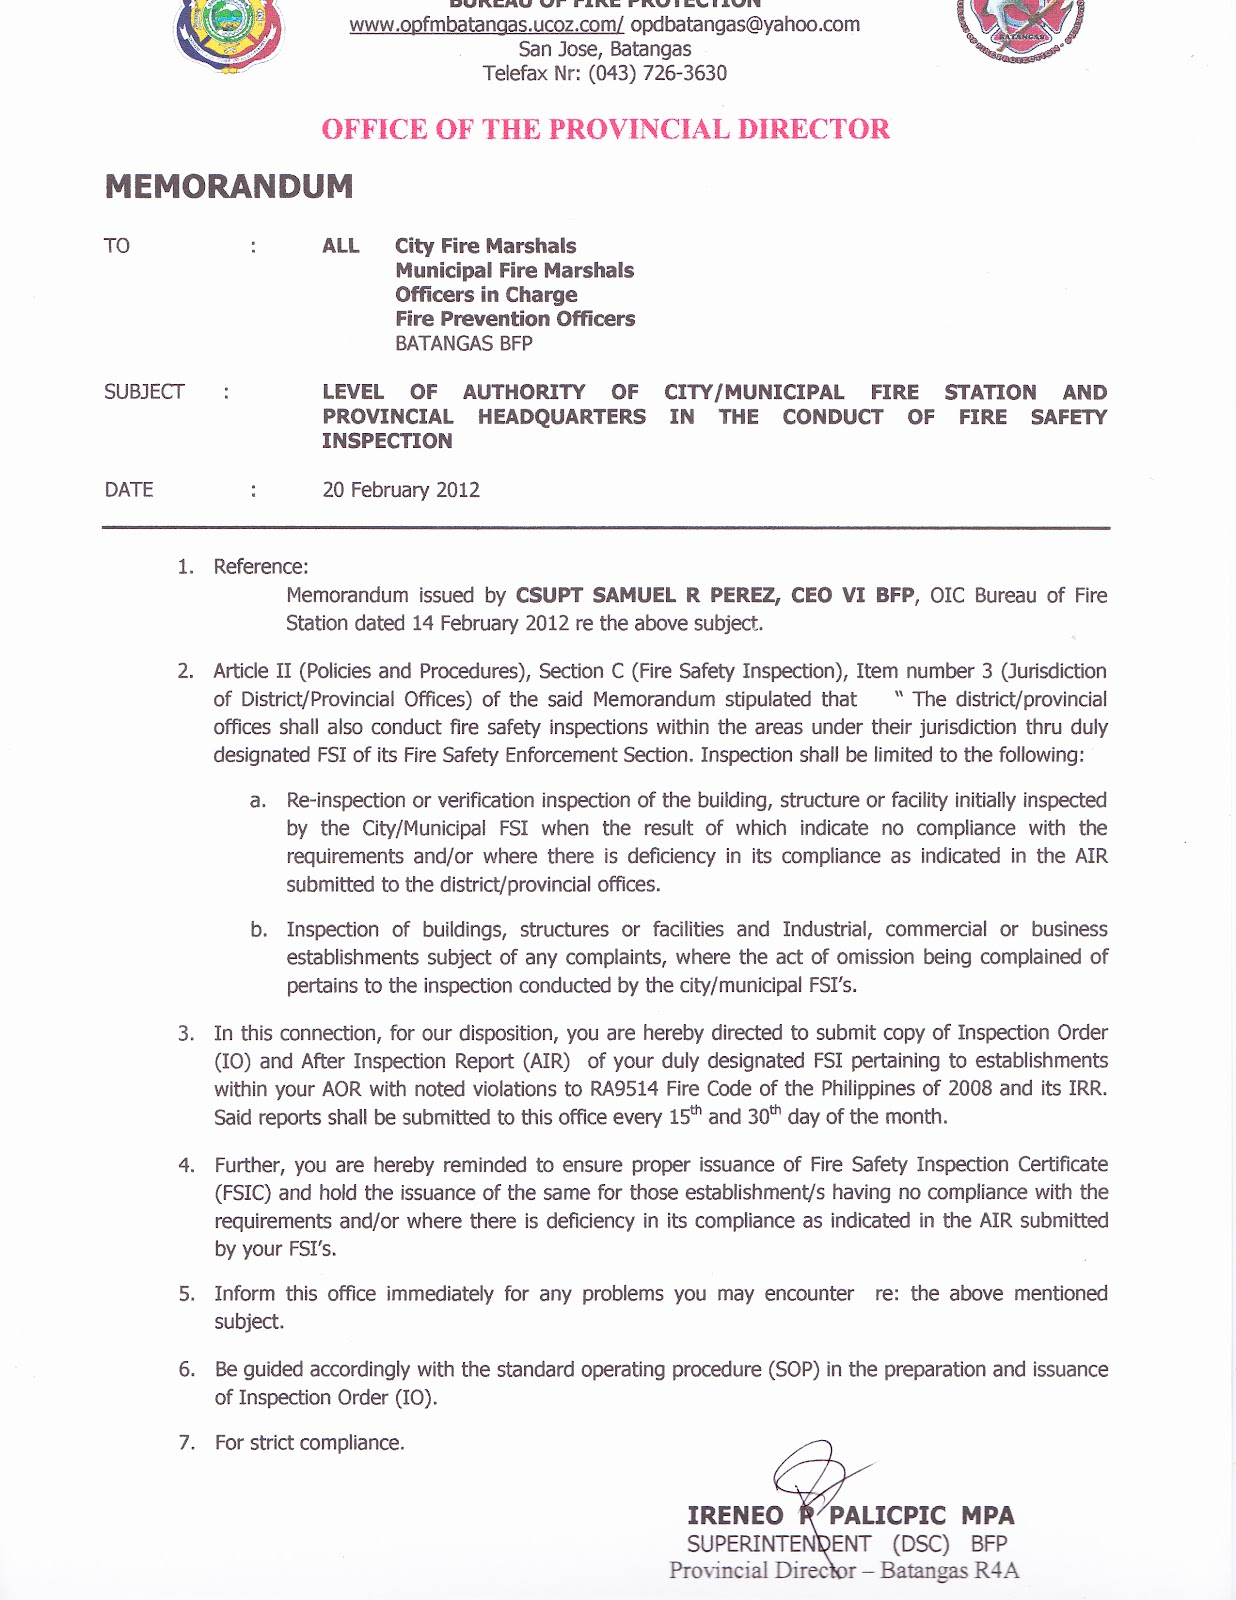 opd batangas archives 2012 memorandum re level of authority in the conduct of fire safety inspection